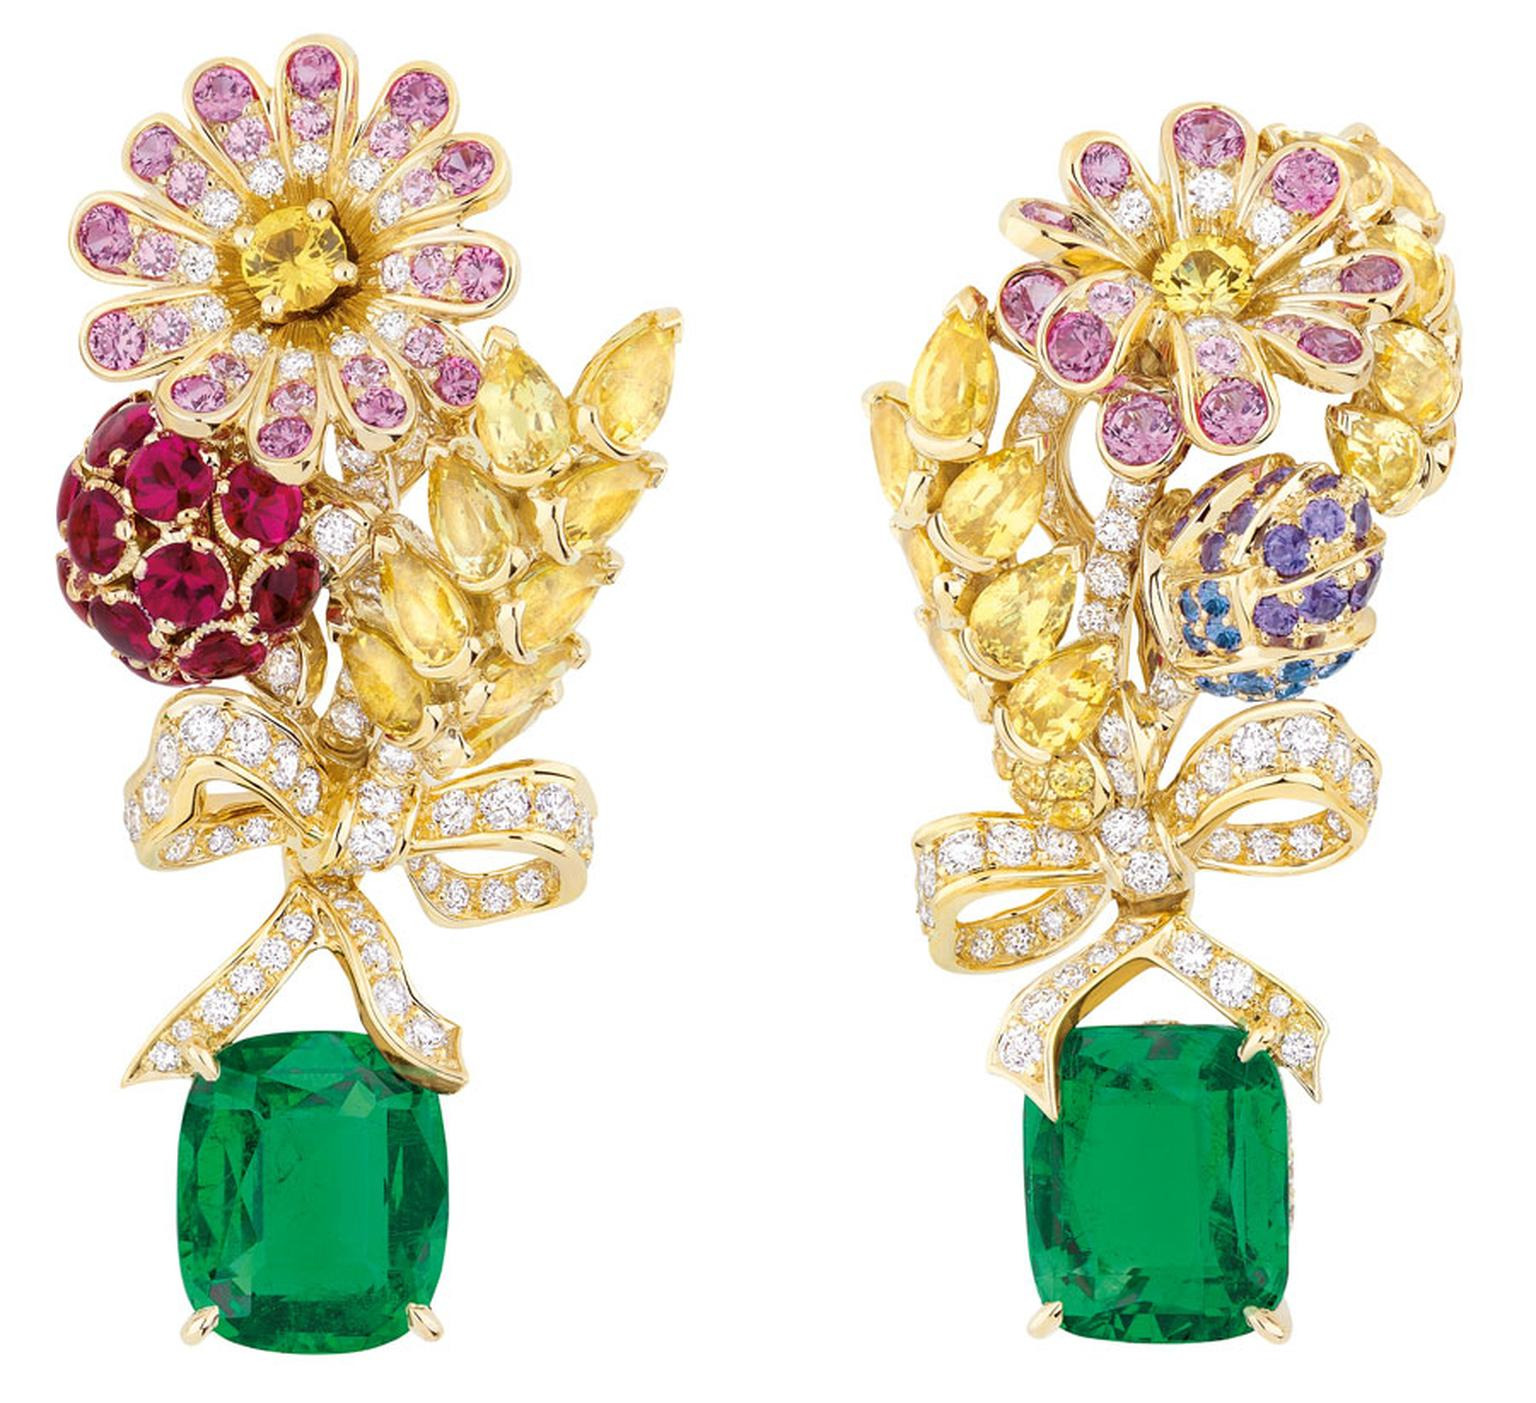 Dior-PRECIEUSES-CHAMPETRE-EARRINGS-EMERALD.jpg